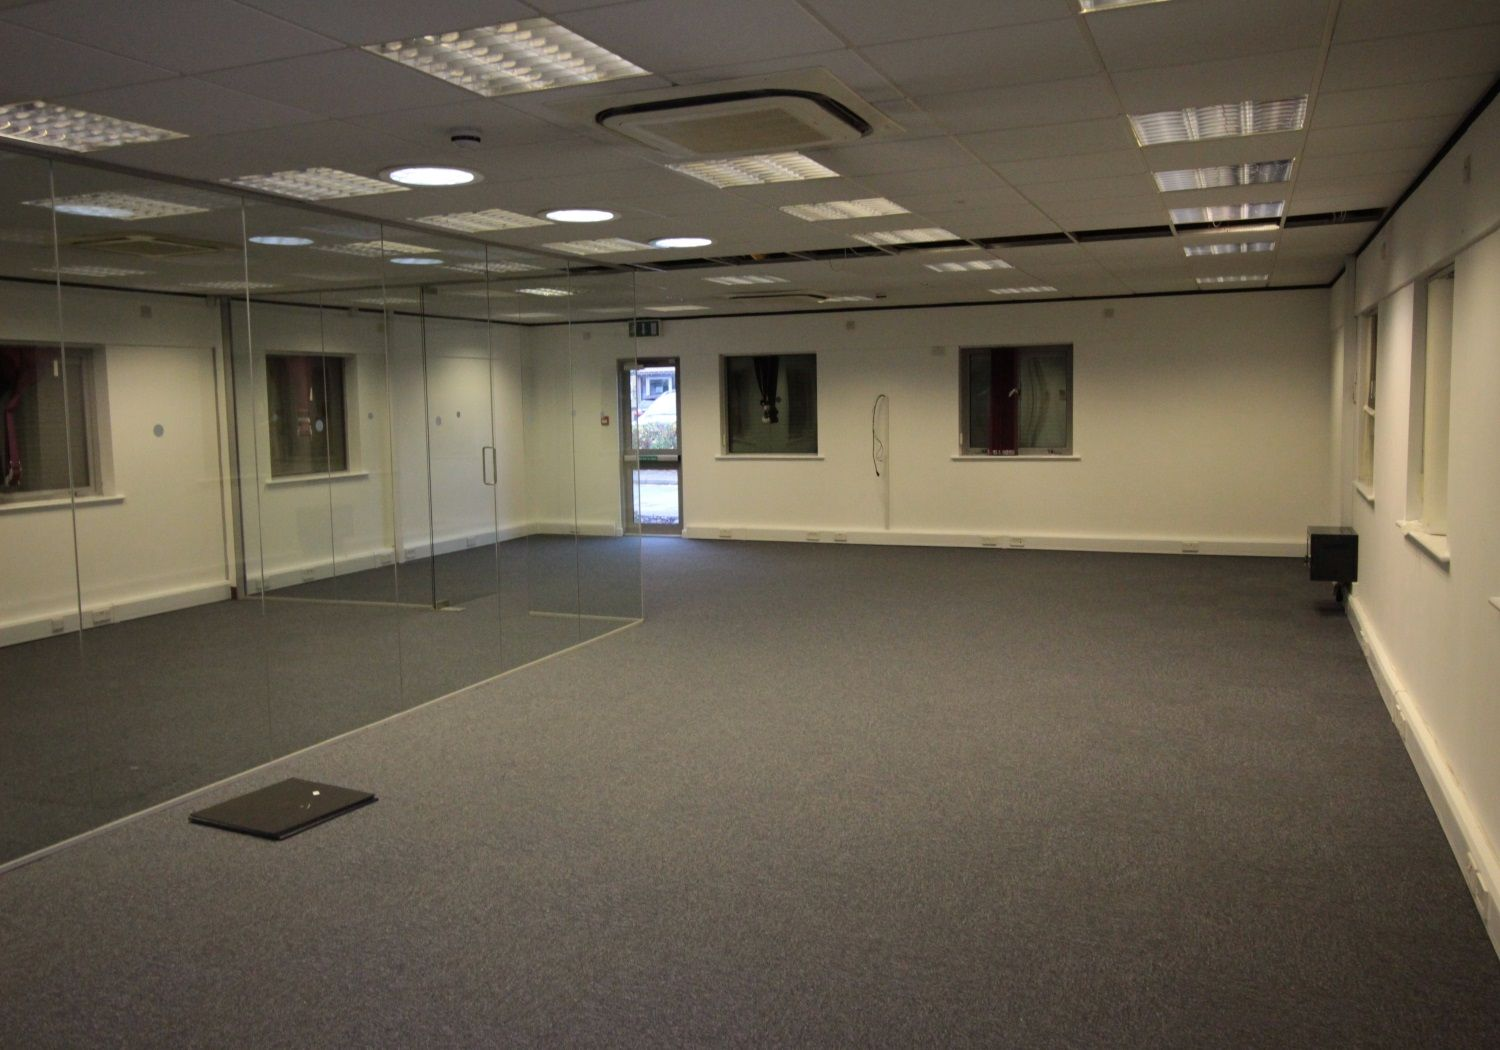 Refurbished modern office building with 6 parking spaces.